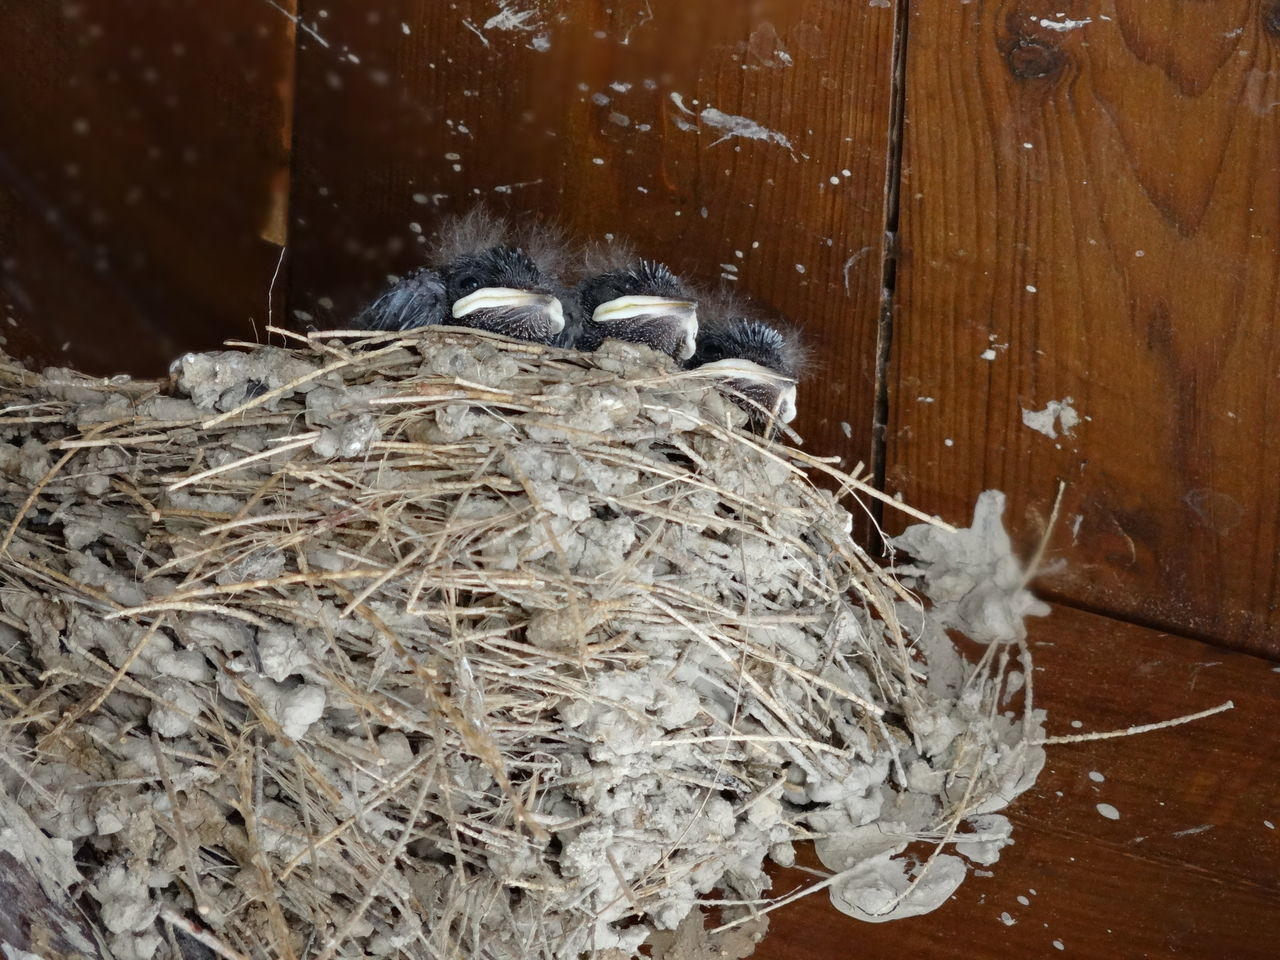 animal themes, hay, wood - material, no people, domestic animals, mammal, one animal, indoors, close-up, straw, day, bird nest, nature